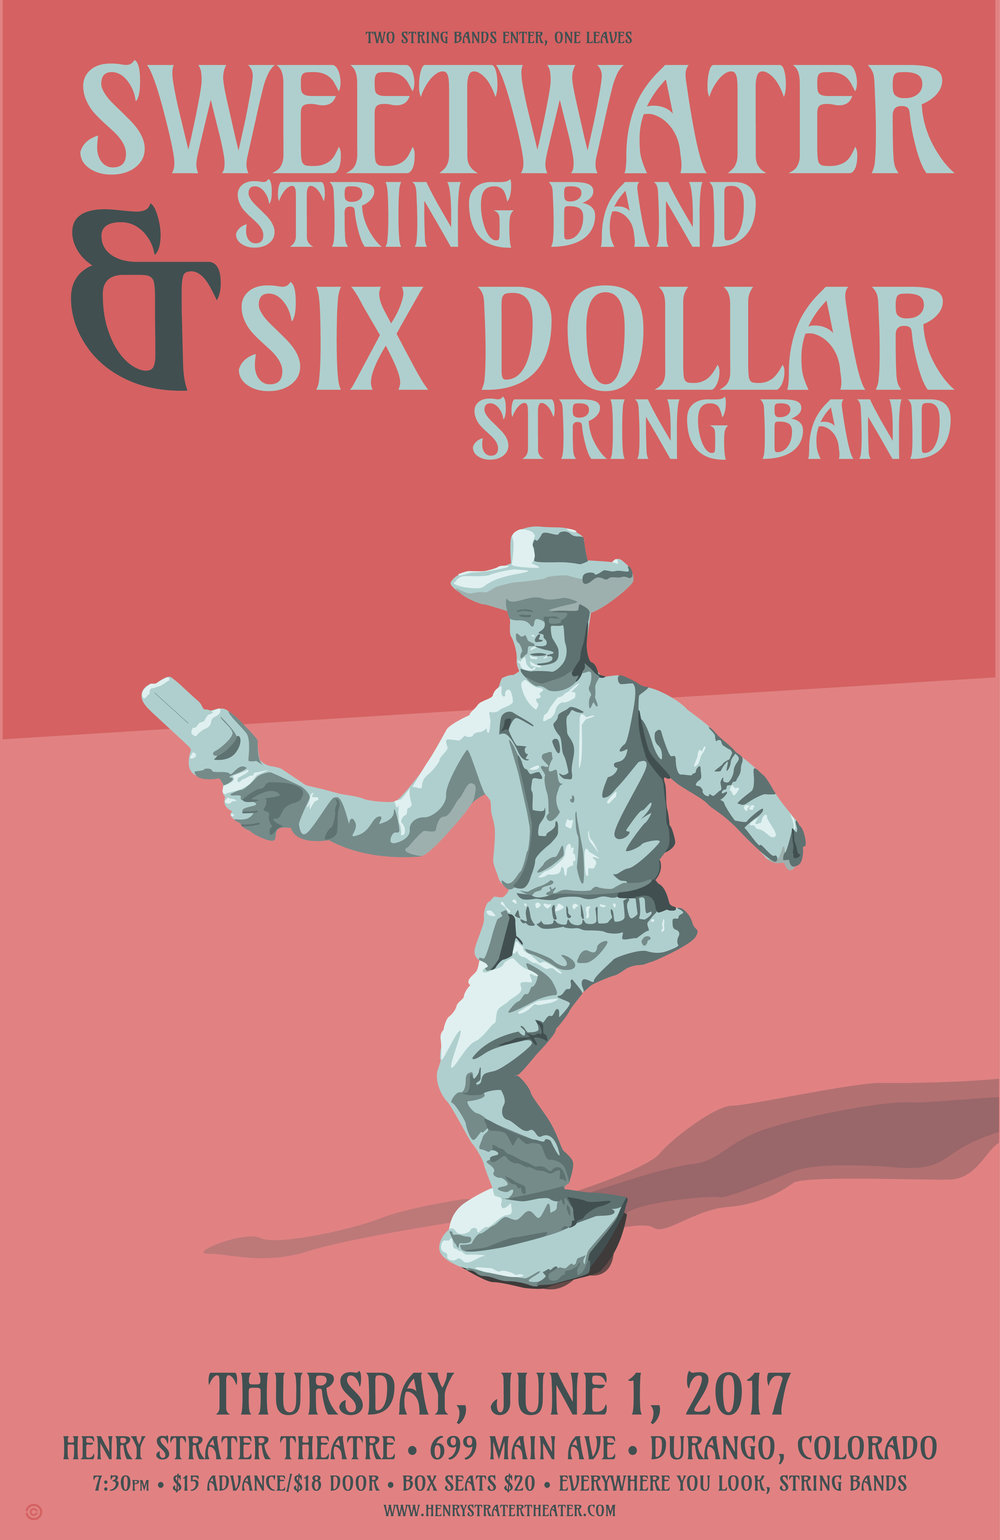 Hopalong - Sweetwater String Band & Six Dollar String Band